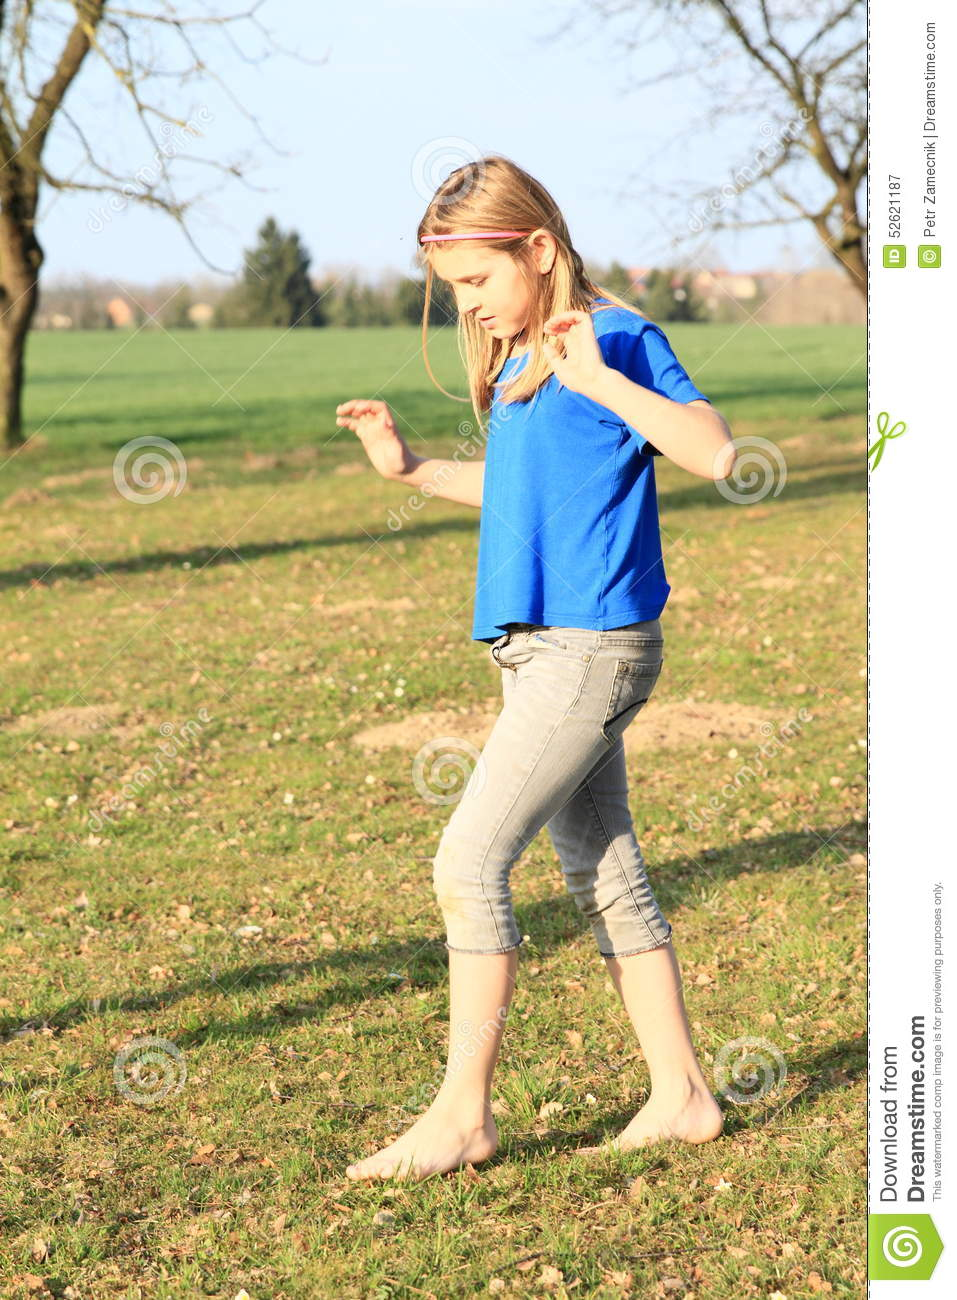 https://thumbs.dreamstime.com/z/little-girl-walking-barefoot-blue-shorts-t-shirt-meadow-52621187.jpg